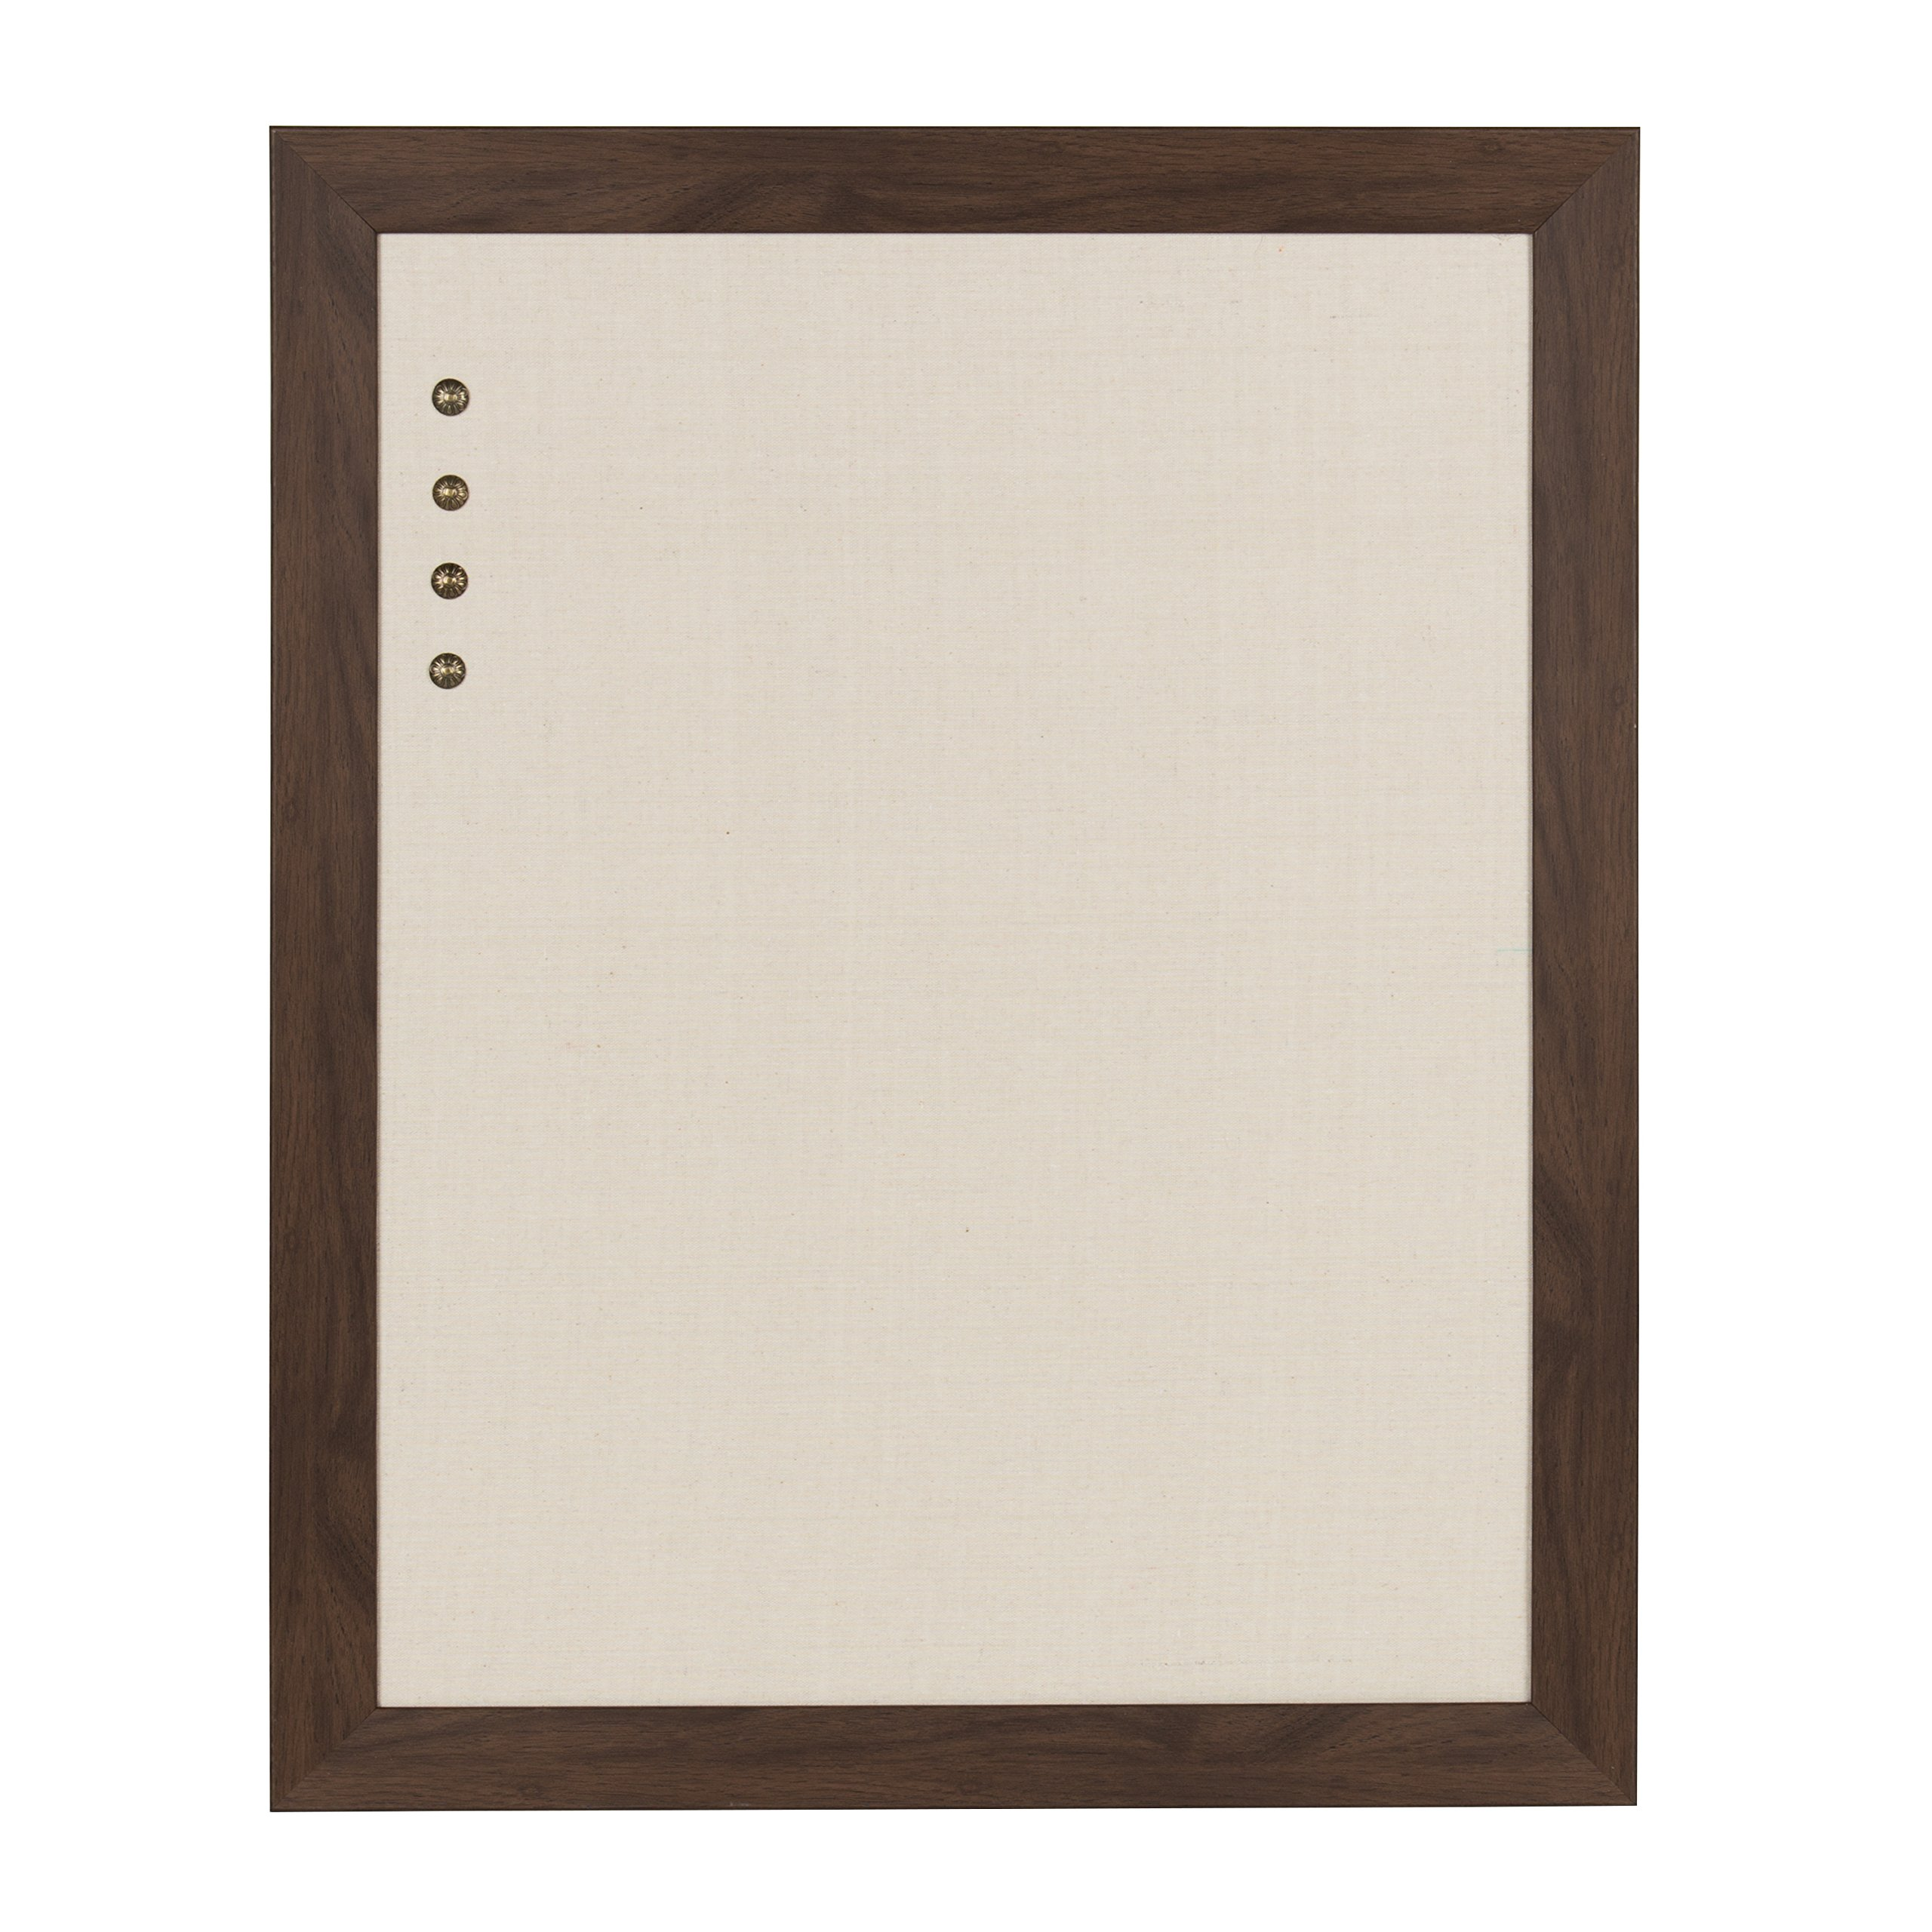 DesignOvation Beatrice Framed Linen Fabric Pinboard, 23x29, Walnut Brown